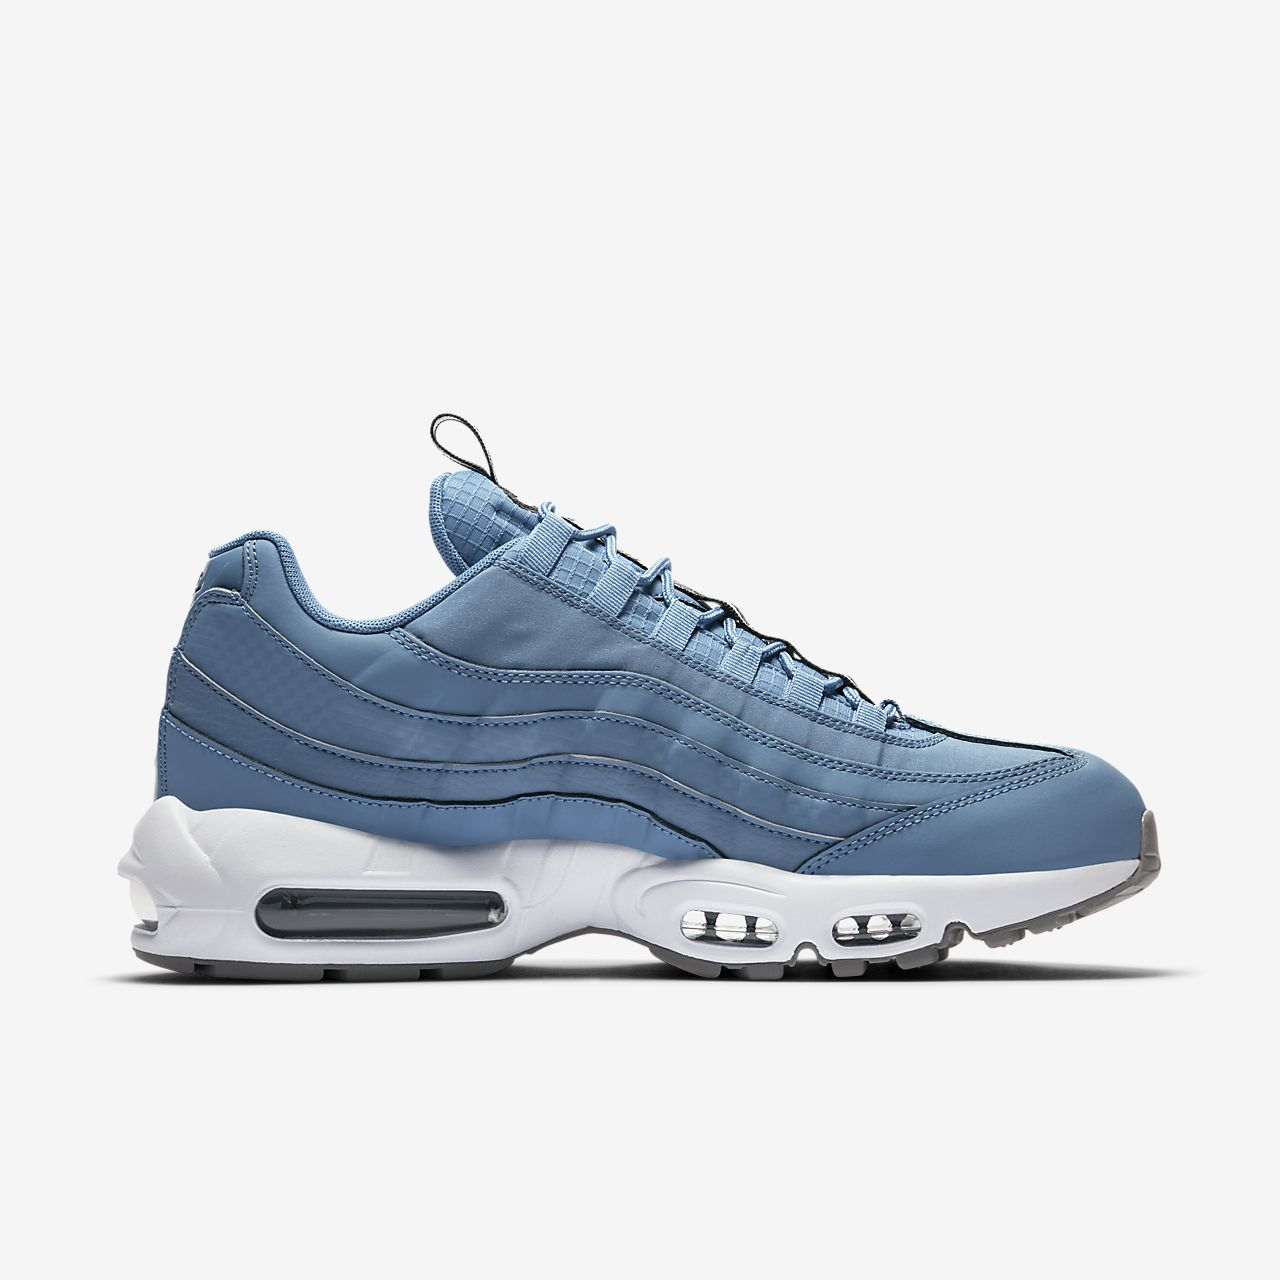 air max 95 blue and grey nz